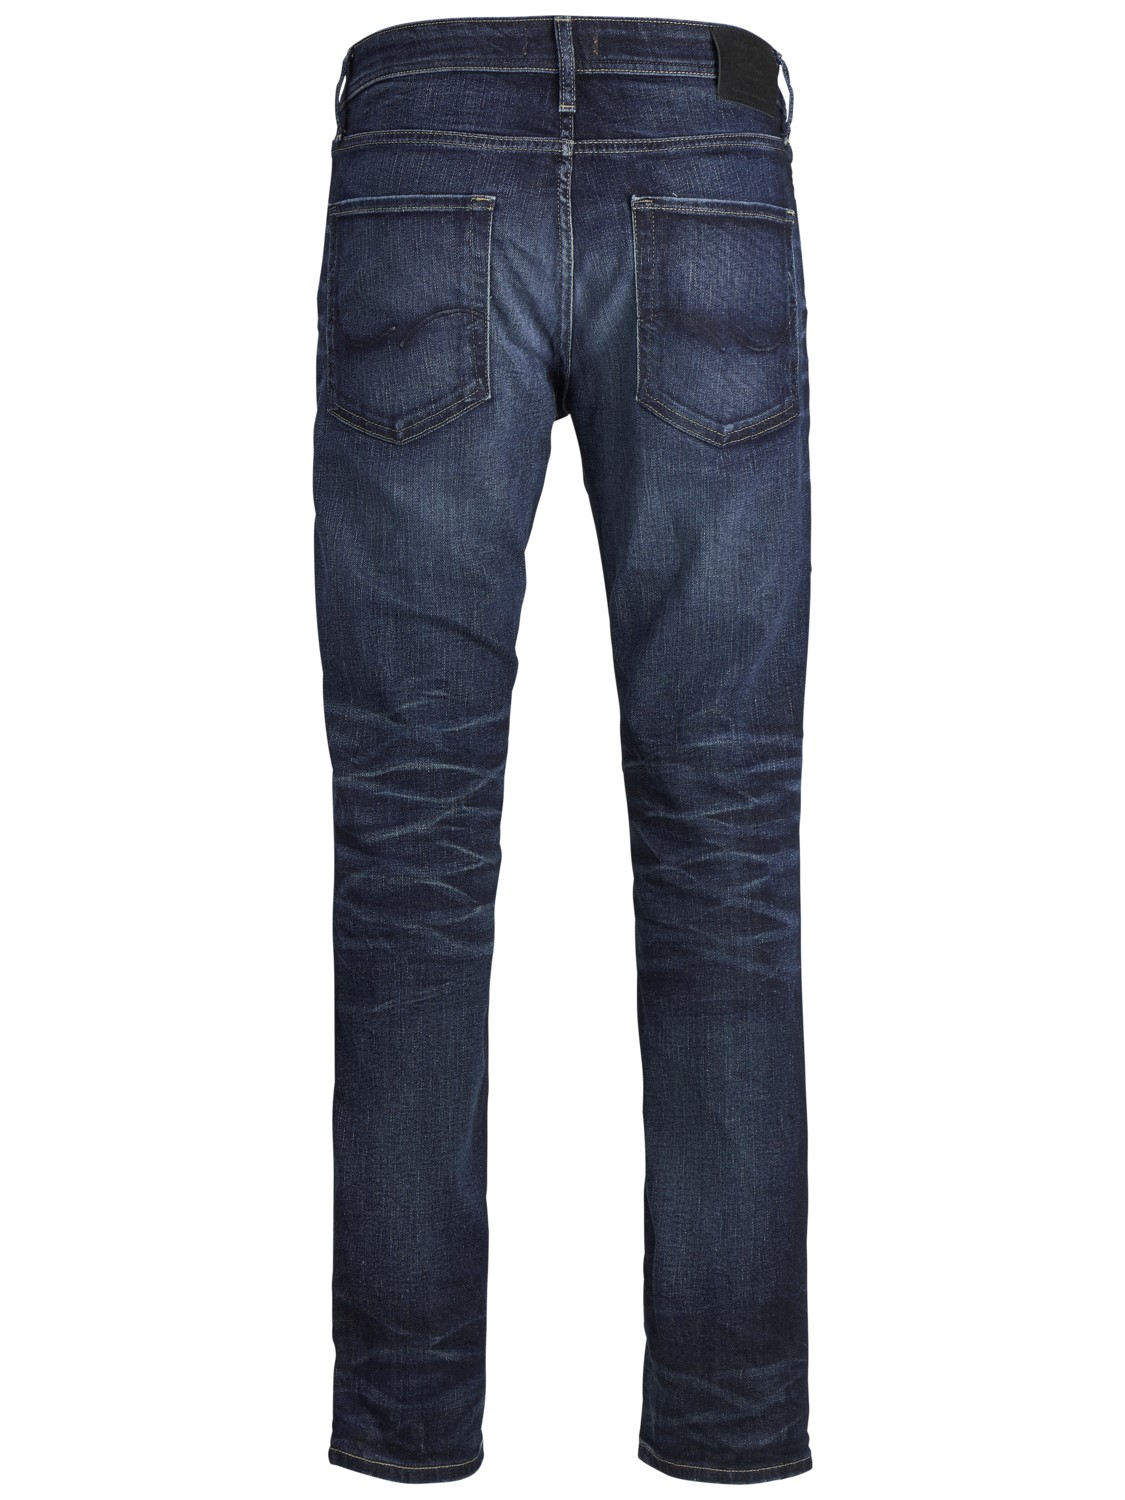 jack-jones-herren-jeans-jjitim-jjoriginal-jj-119-lid-slim-fit-blau-blue-denim